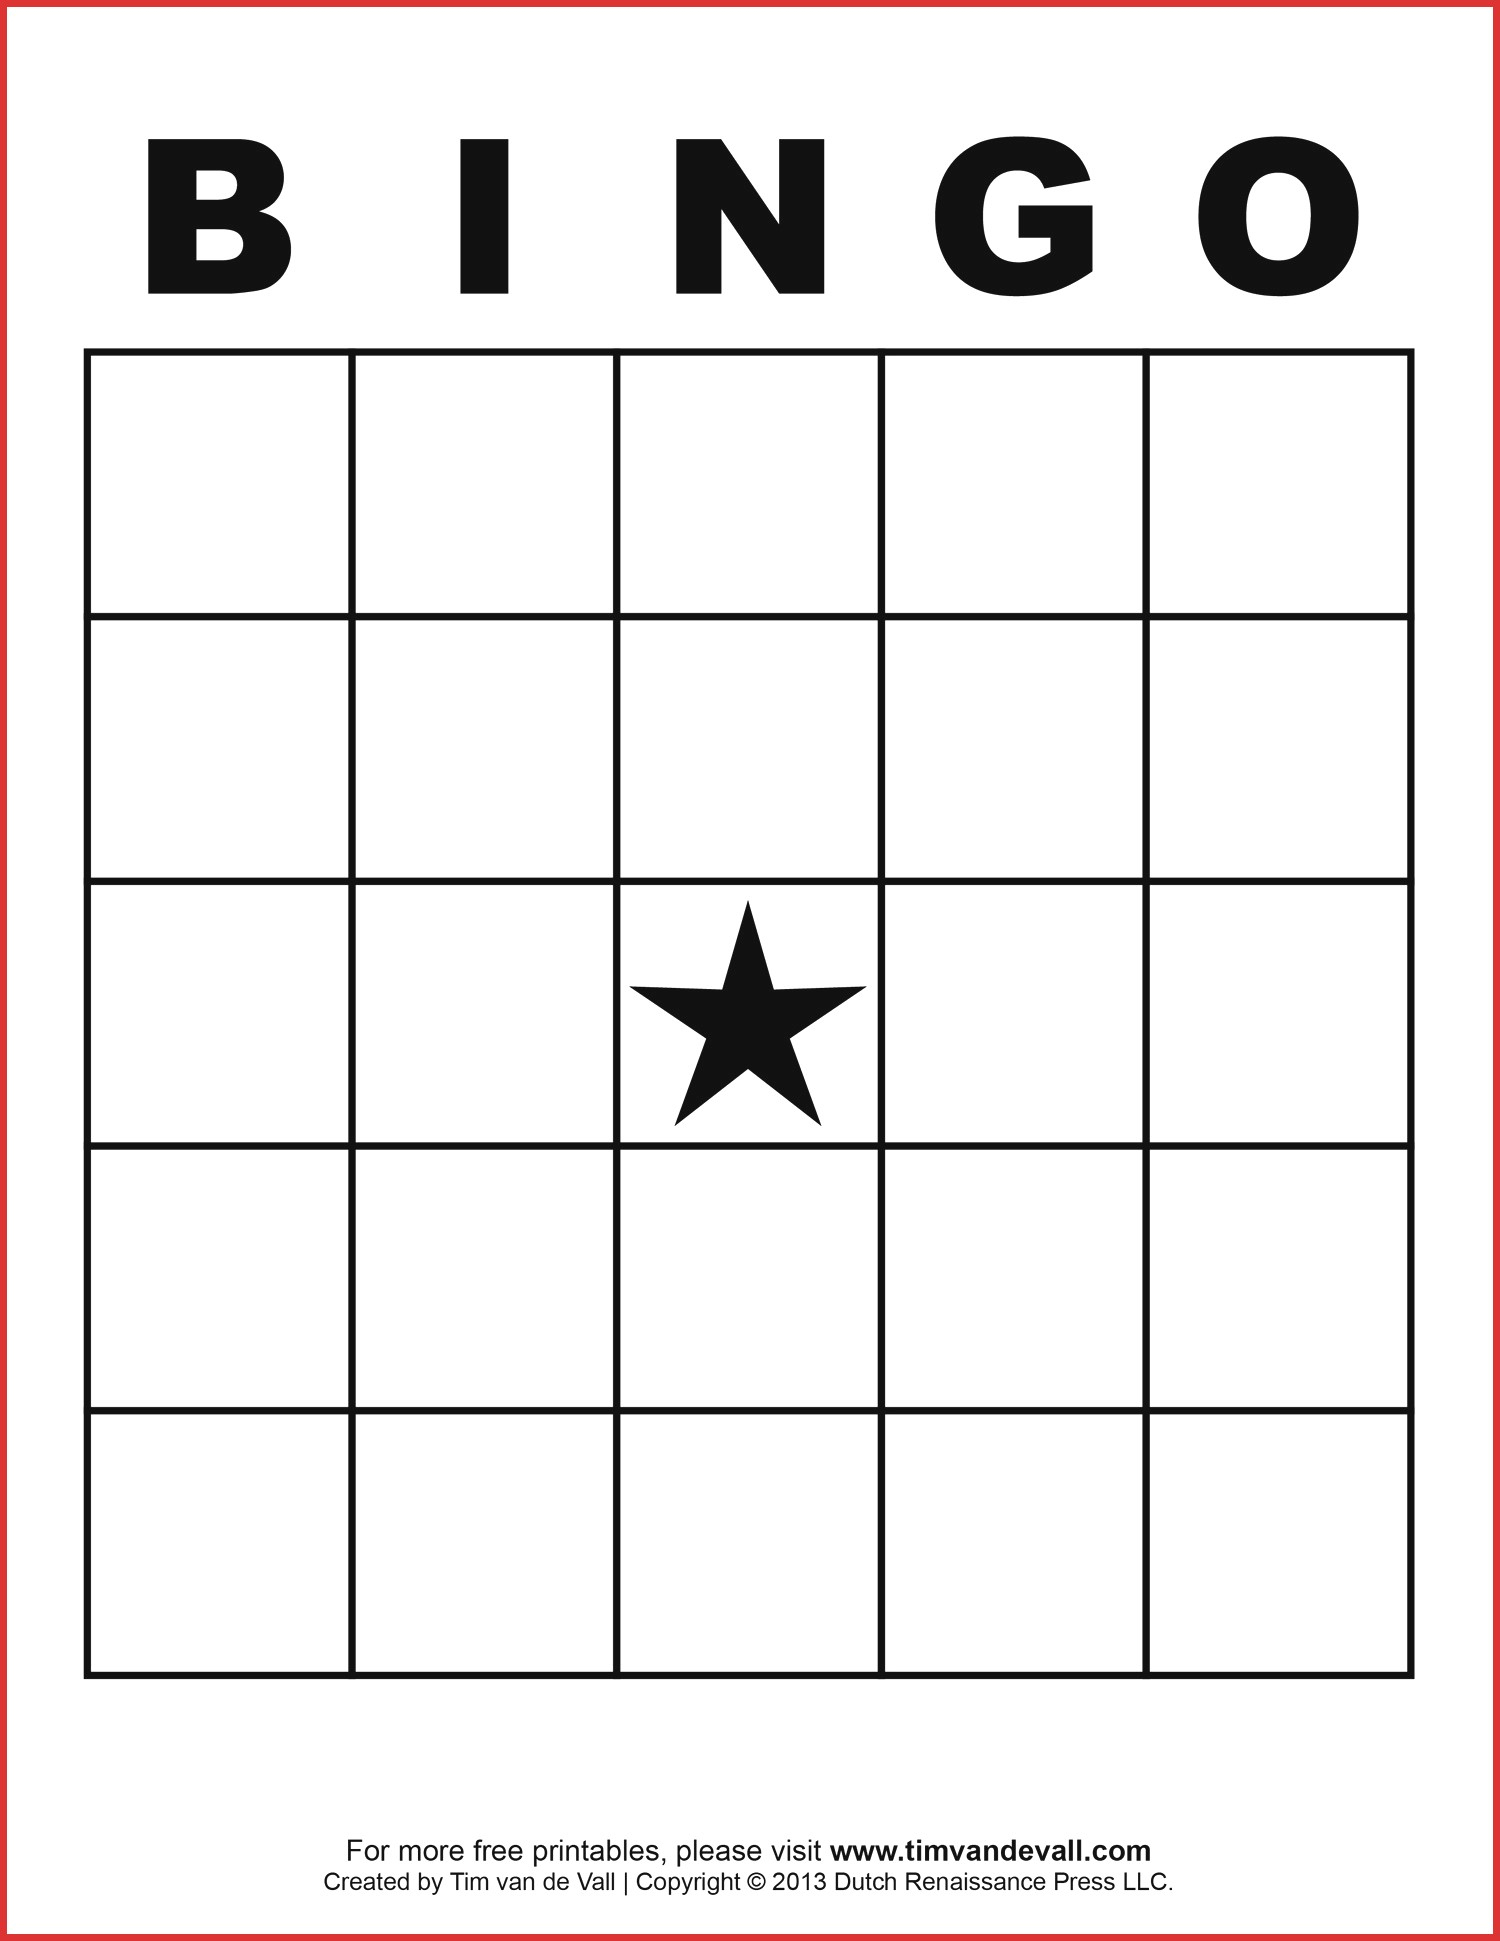 Awesome Blank Bingo Template | Dos Joinery - Printable Bingo Template Free